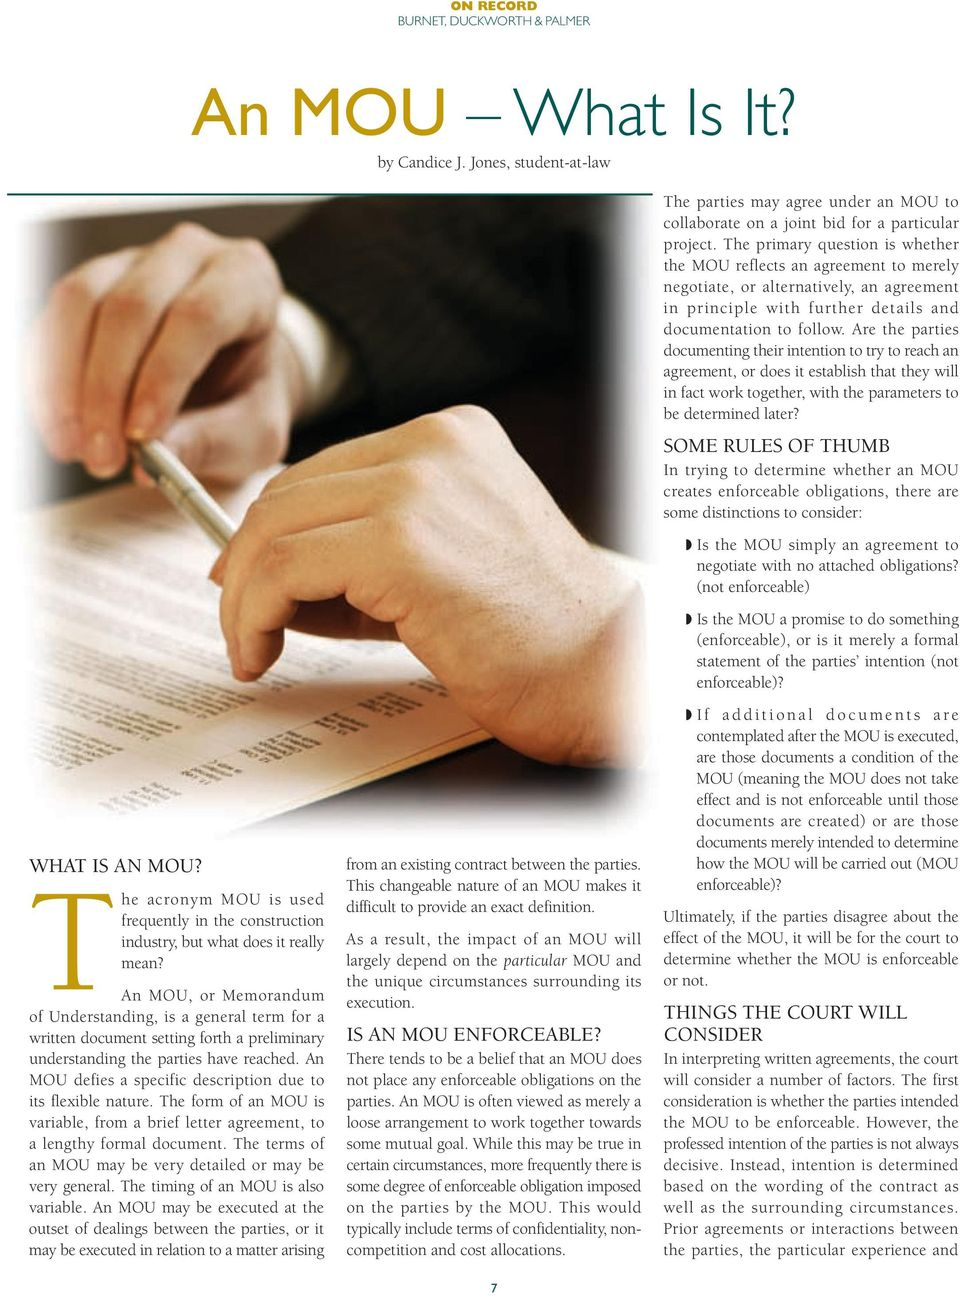 An MOU defies a specific description due to its flexible nature. The form of an MOU is variable, from a brief letter agreement, to a lengthy formal document.